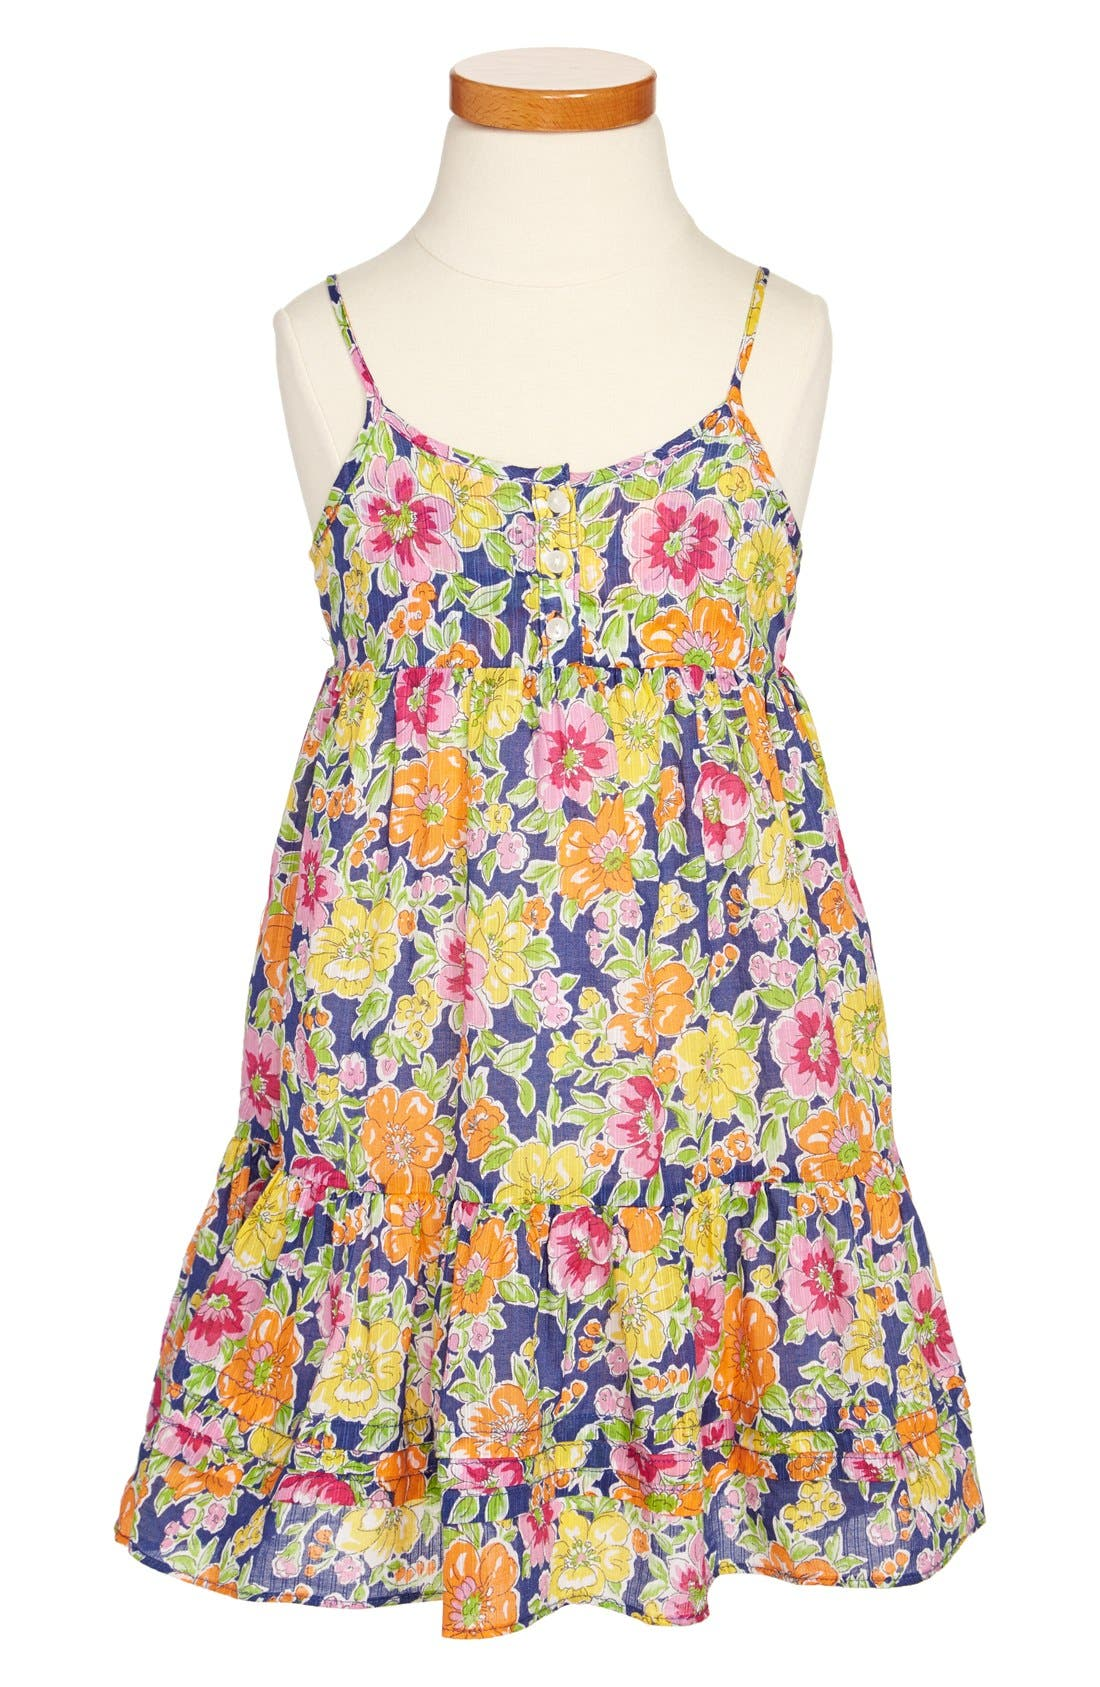 Alternate Image 1 Selected - Ralph Lauren Floral Print Cotton Sleeveless Dress (Toddler Girls)